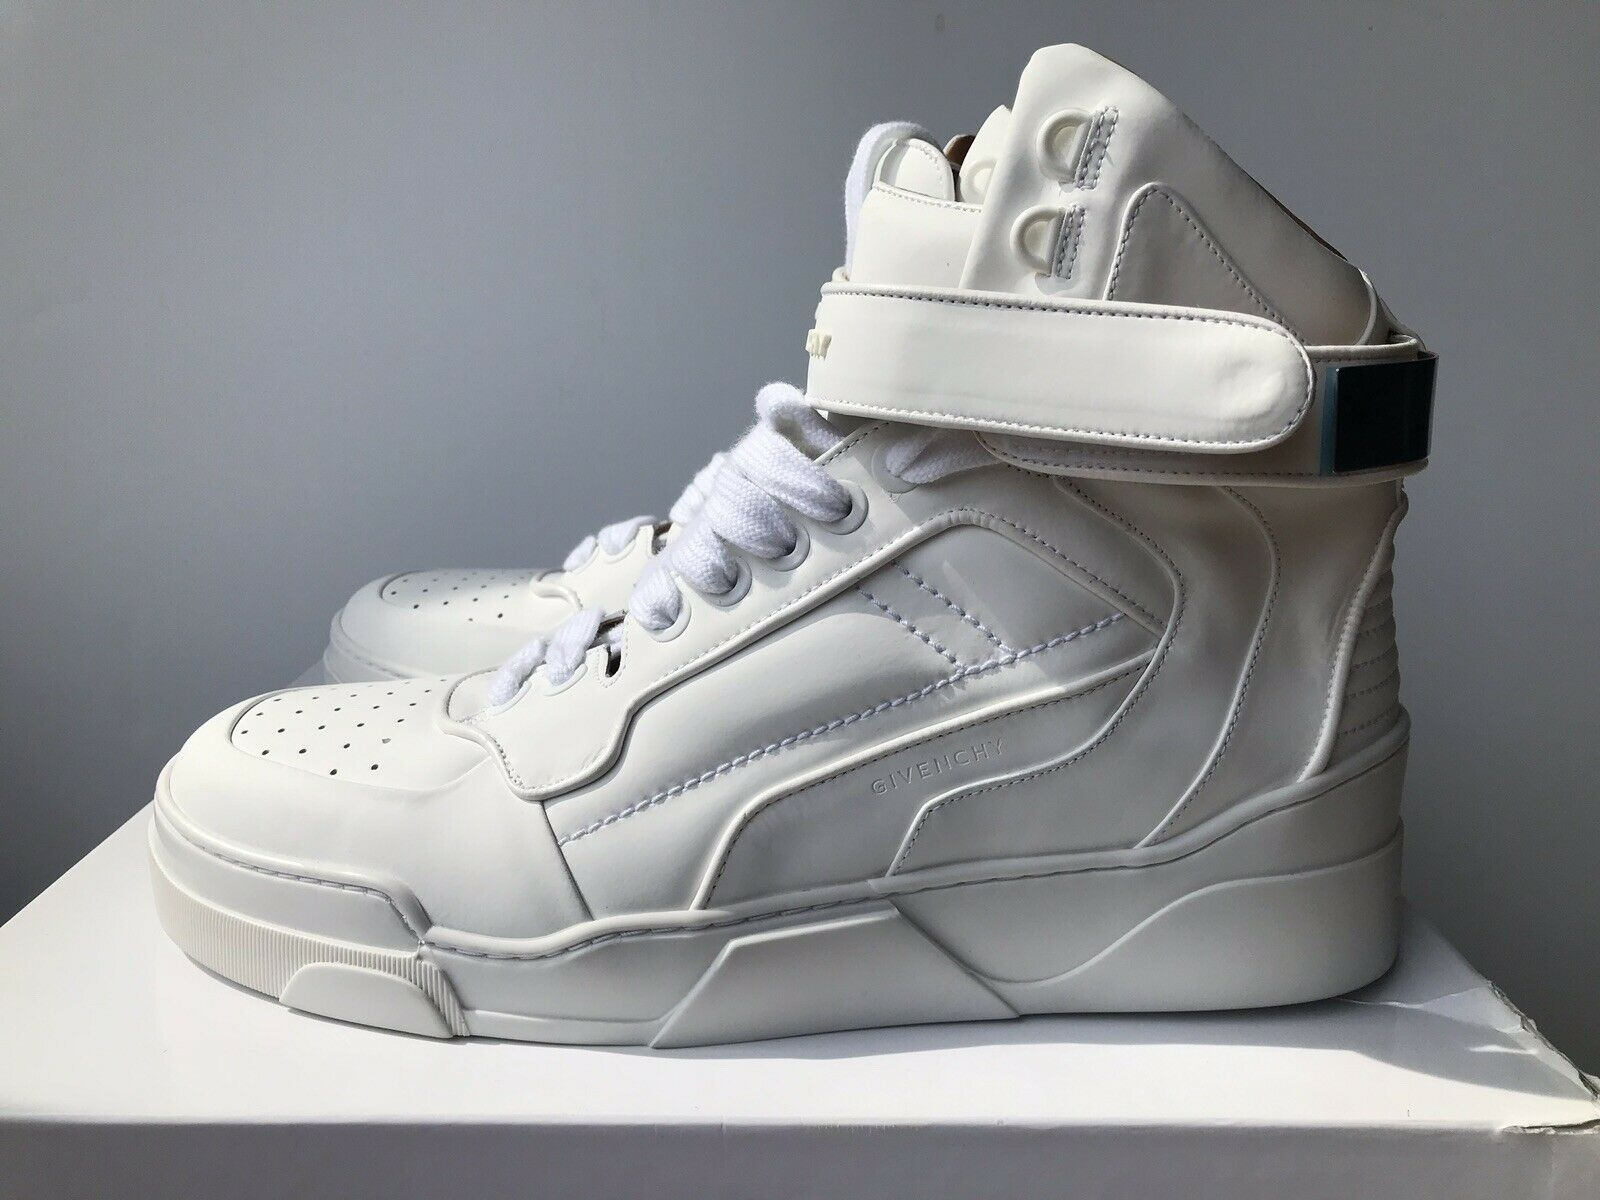 GIVENCHY FW13 White Leather Sneaker High Metal B shoes Sneakers 45 US12 NIB